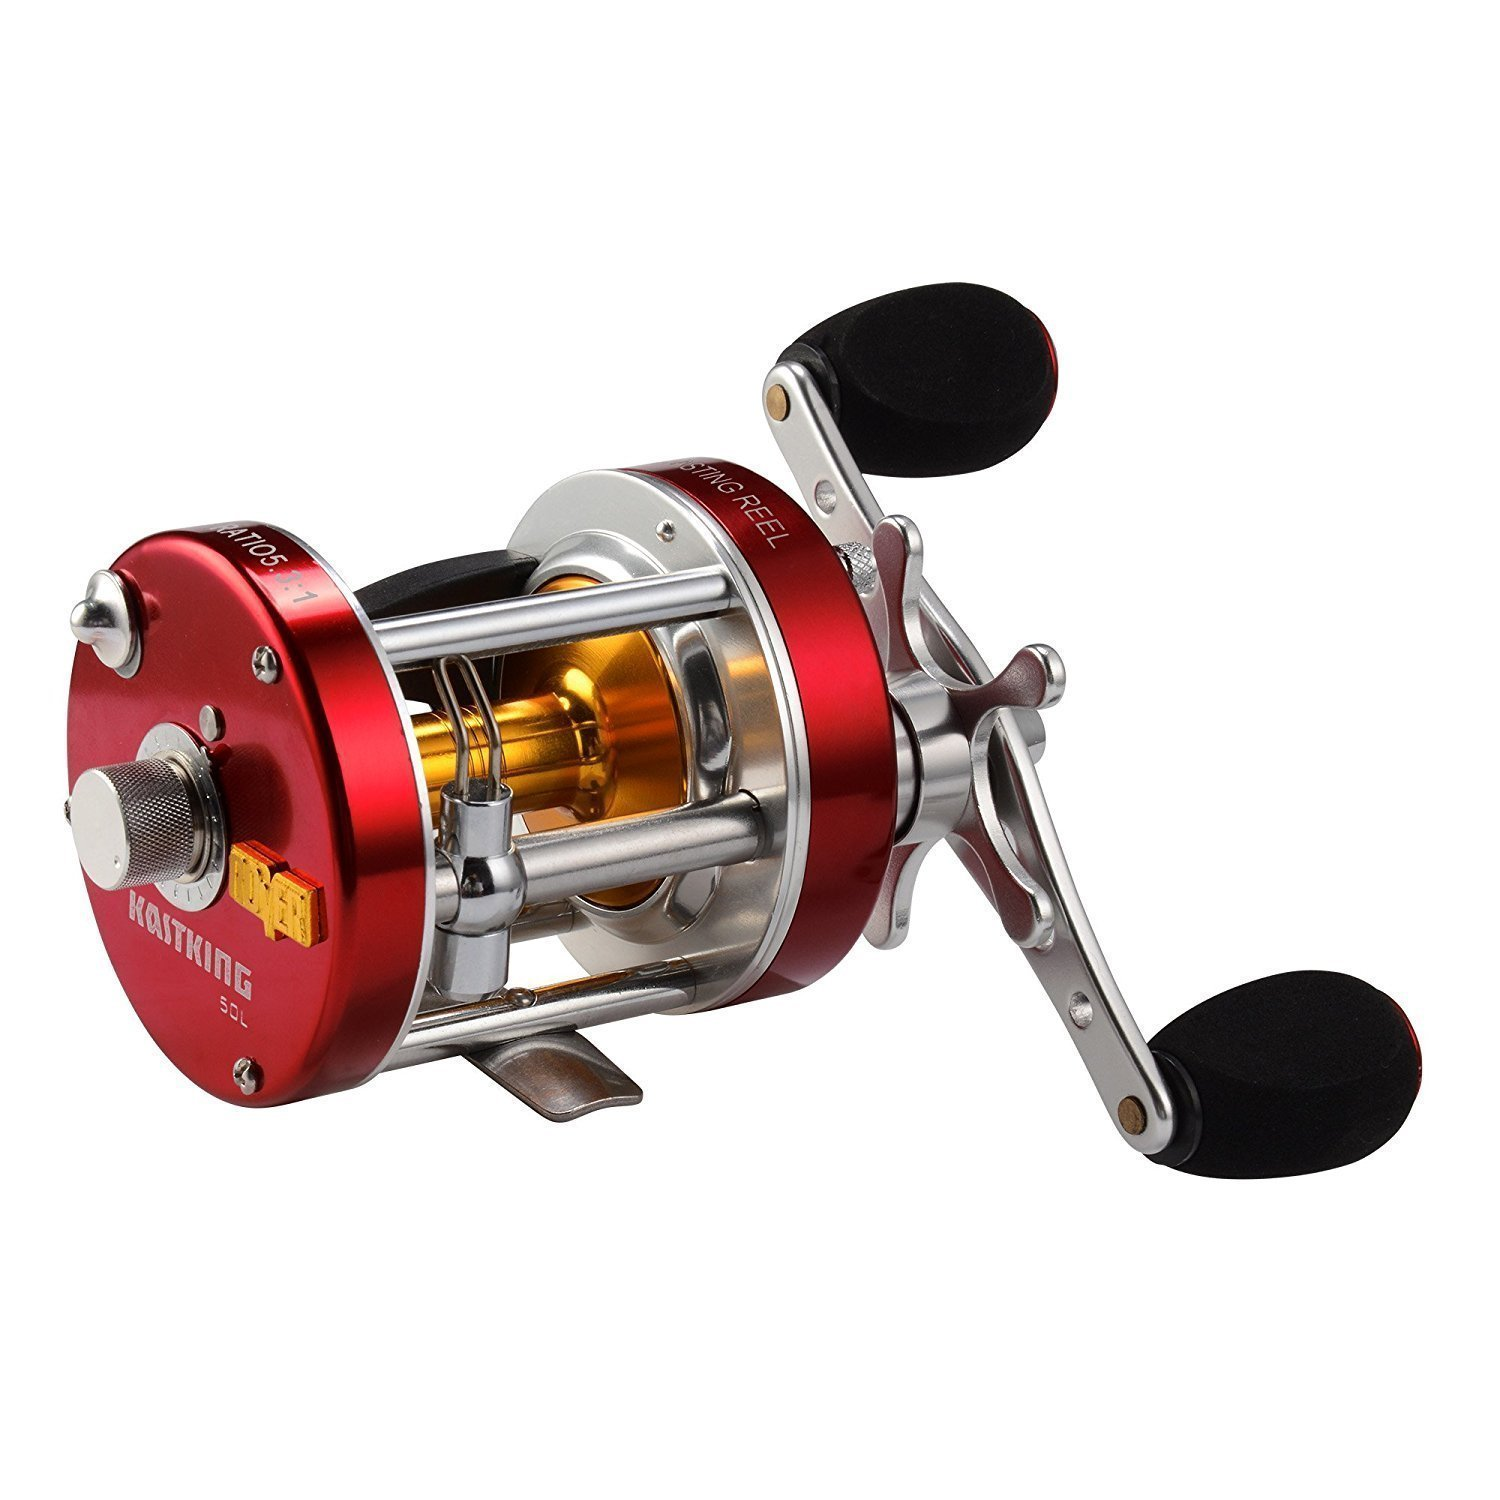 KastKing Rover Round Baitcasting Reel - No. 1 Rated Conventional Reel - Carbon Fiber Star Drag - Reinforced Metal Body by KastKing (Image #1)